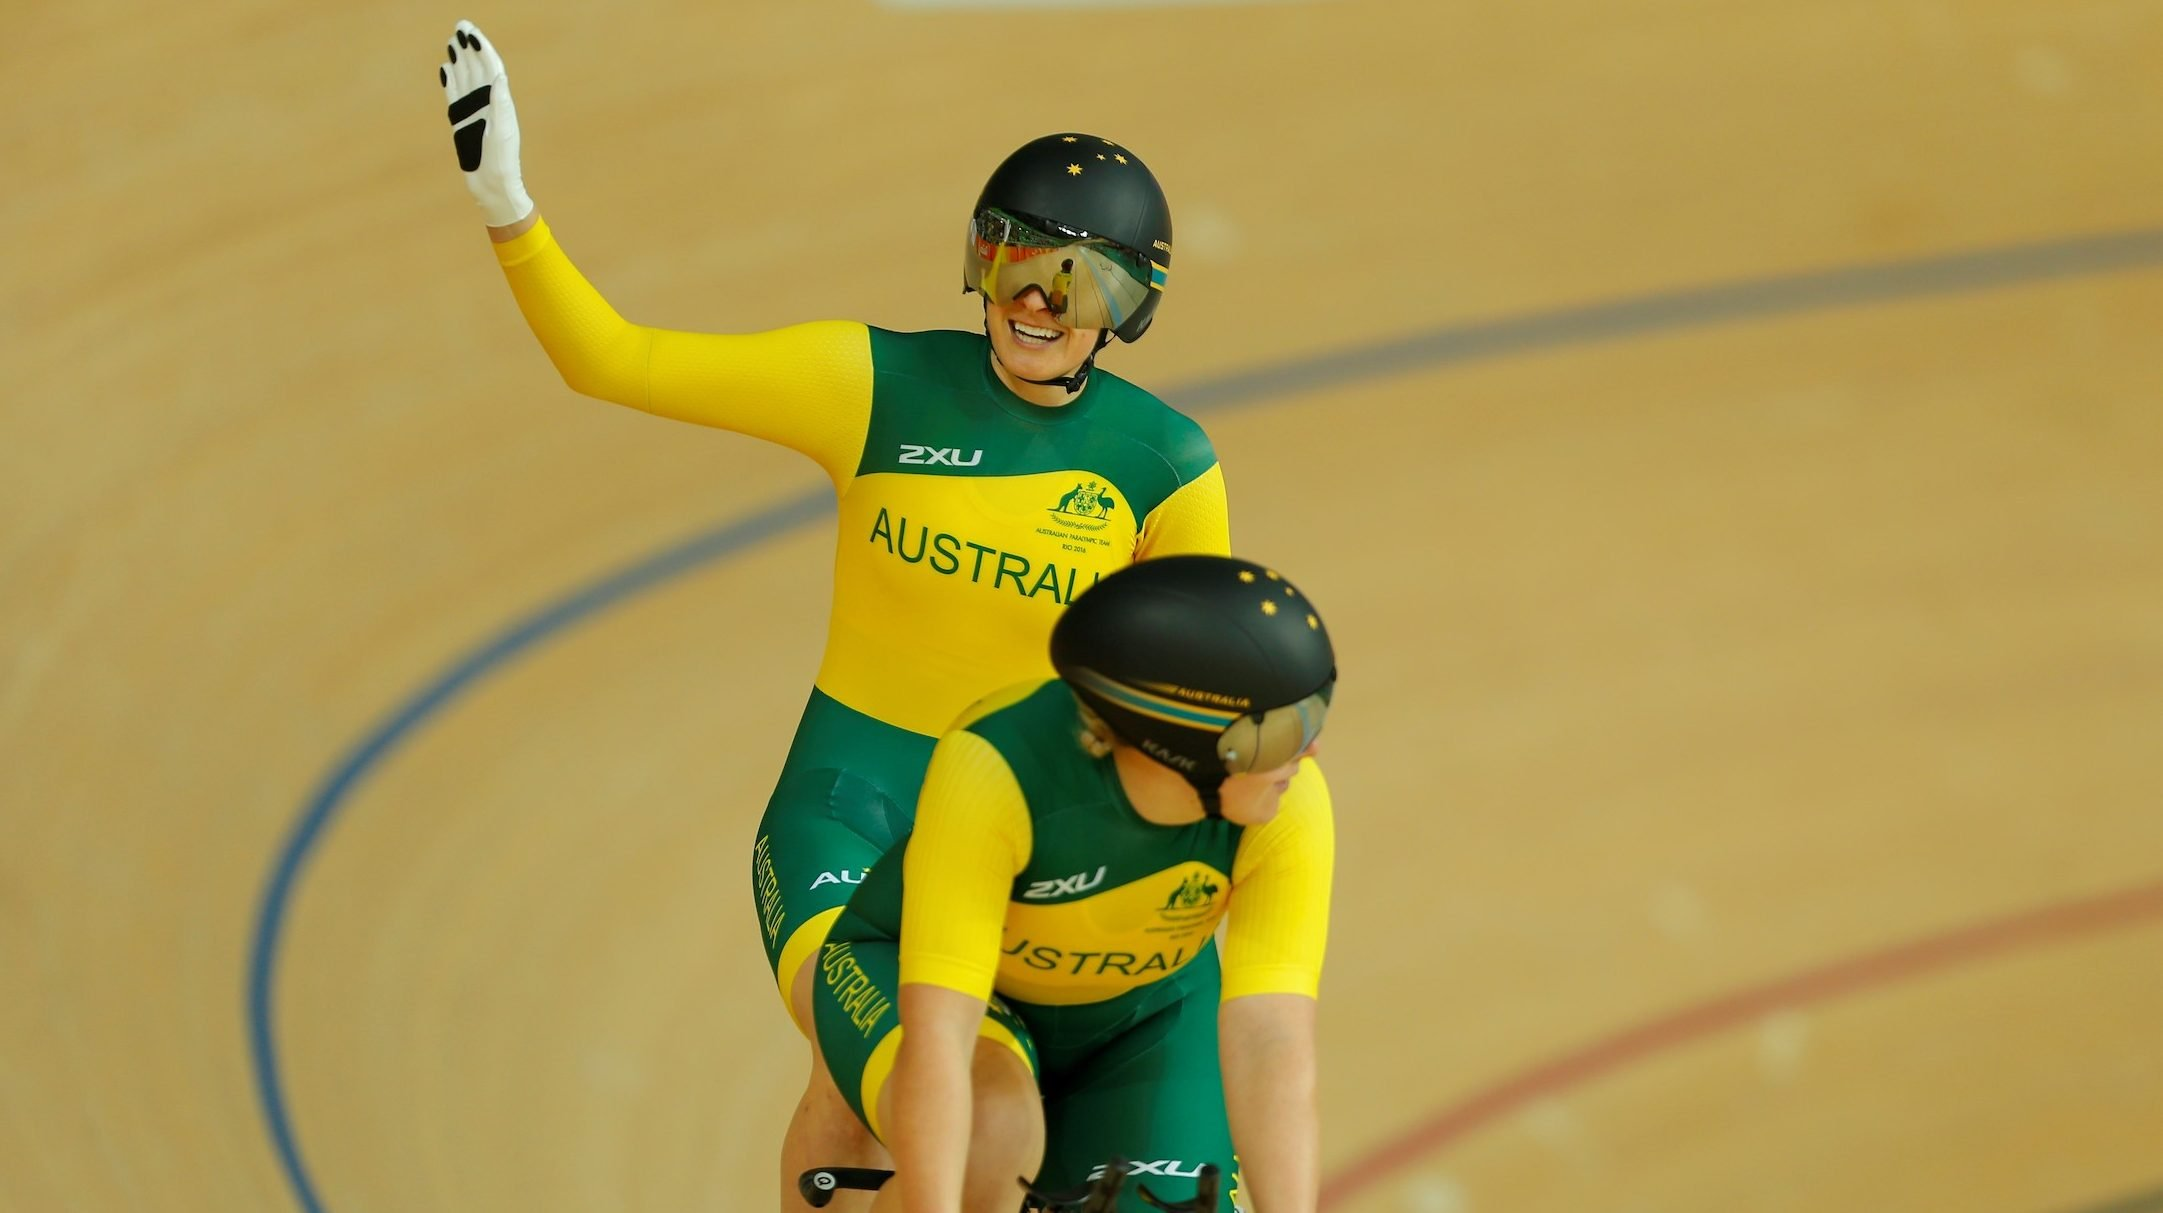 Australian Para-cycling team arrive in LA for Worlds